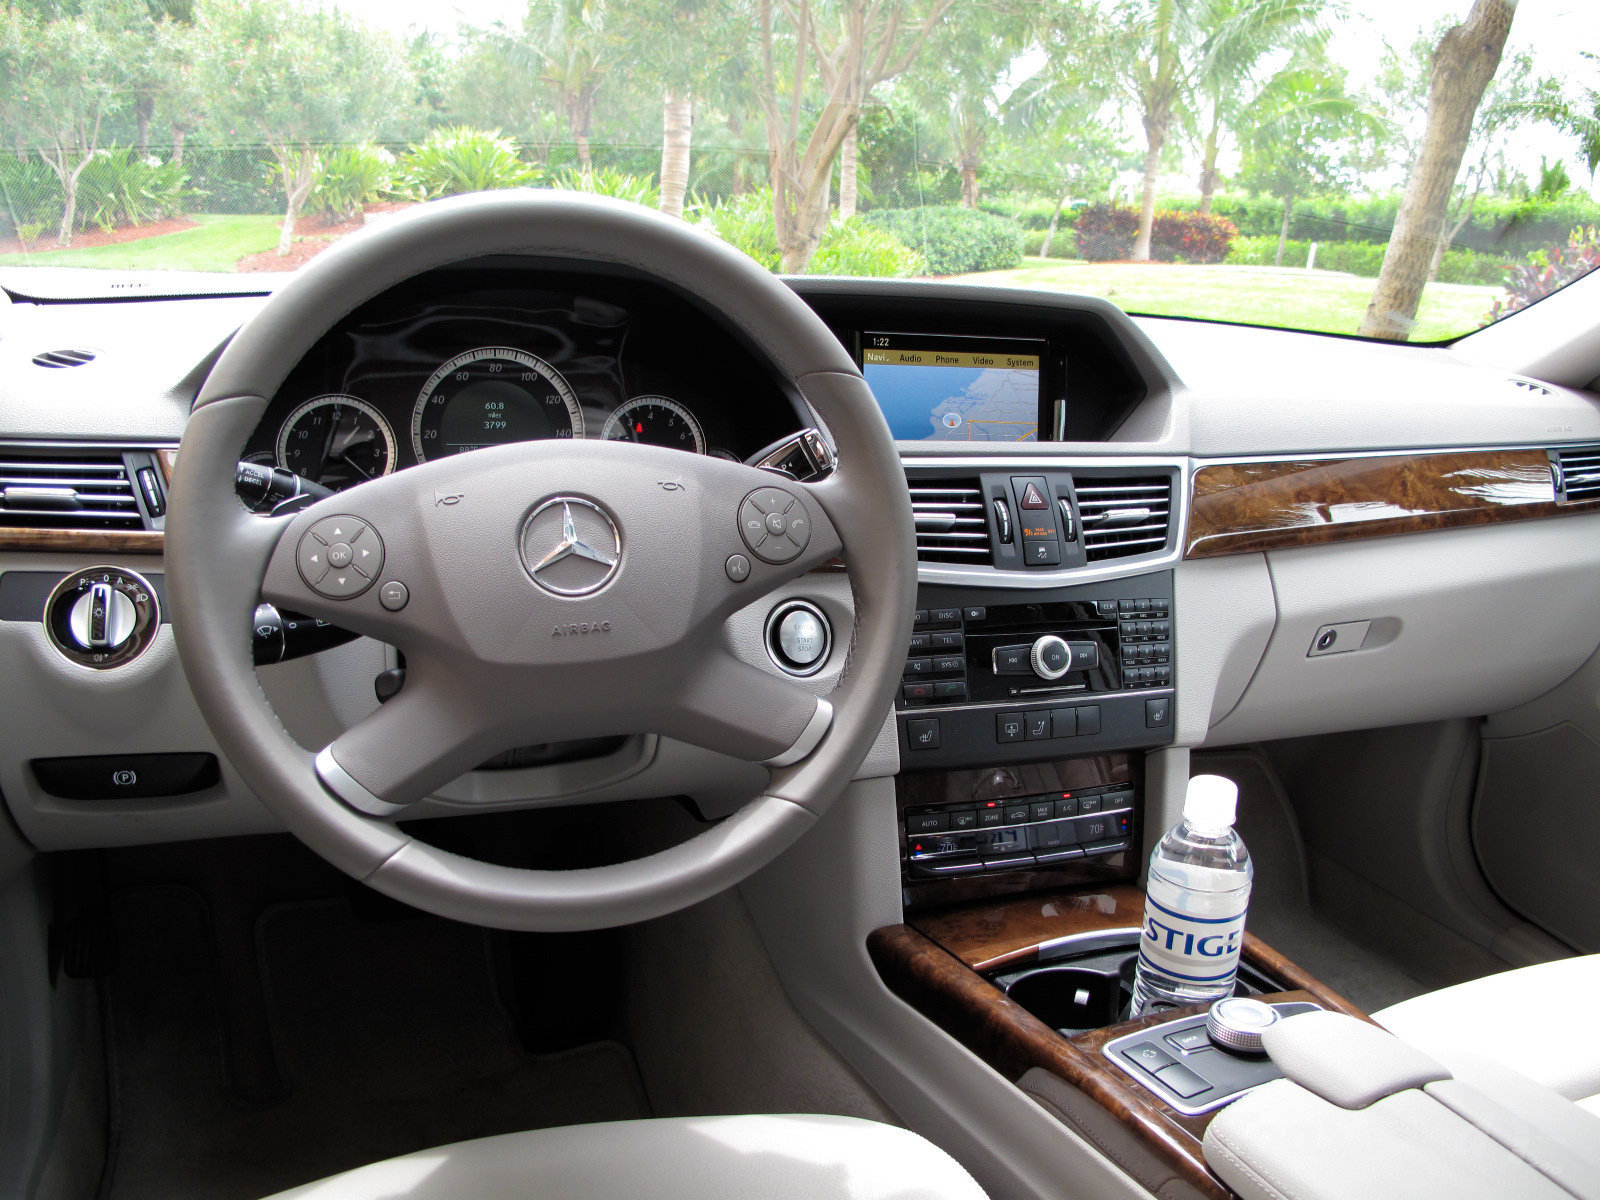 2005 Mercedes Benz E350 with Sports Equipment photo - 1